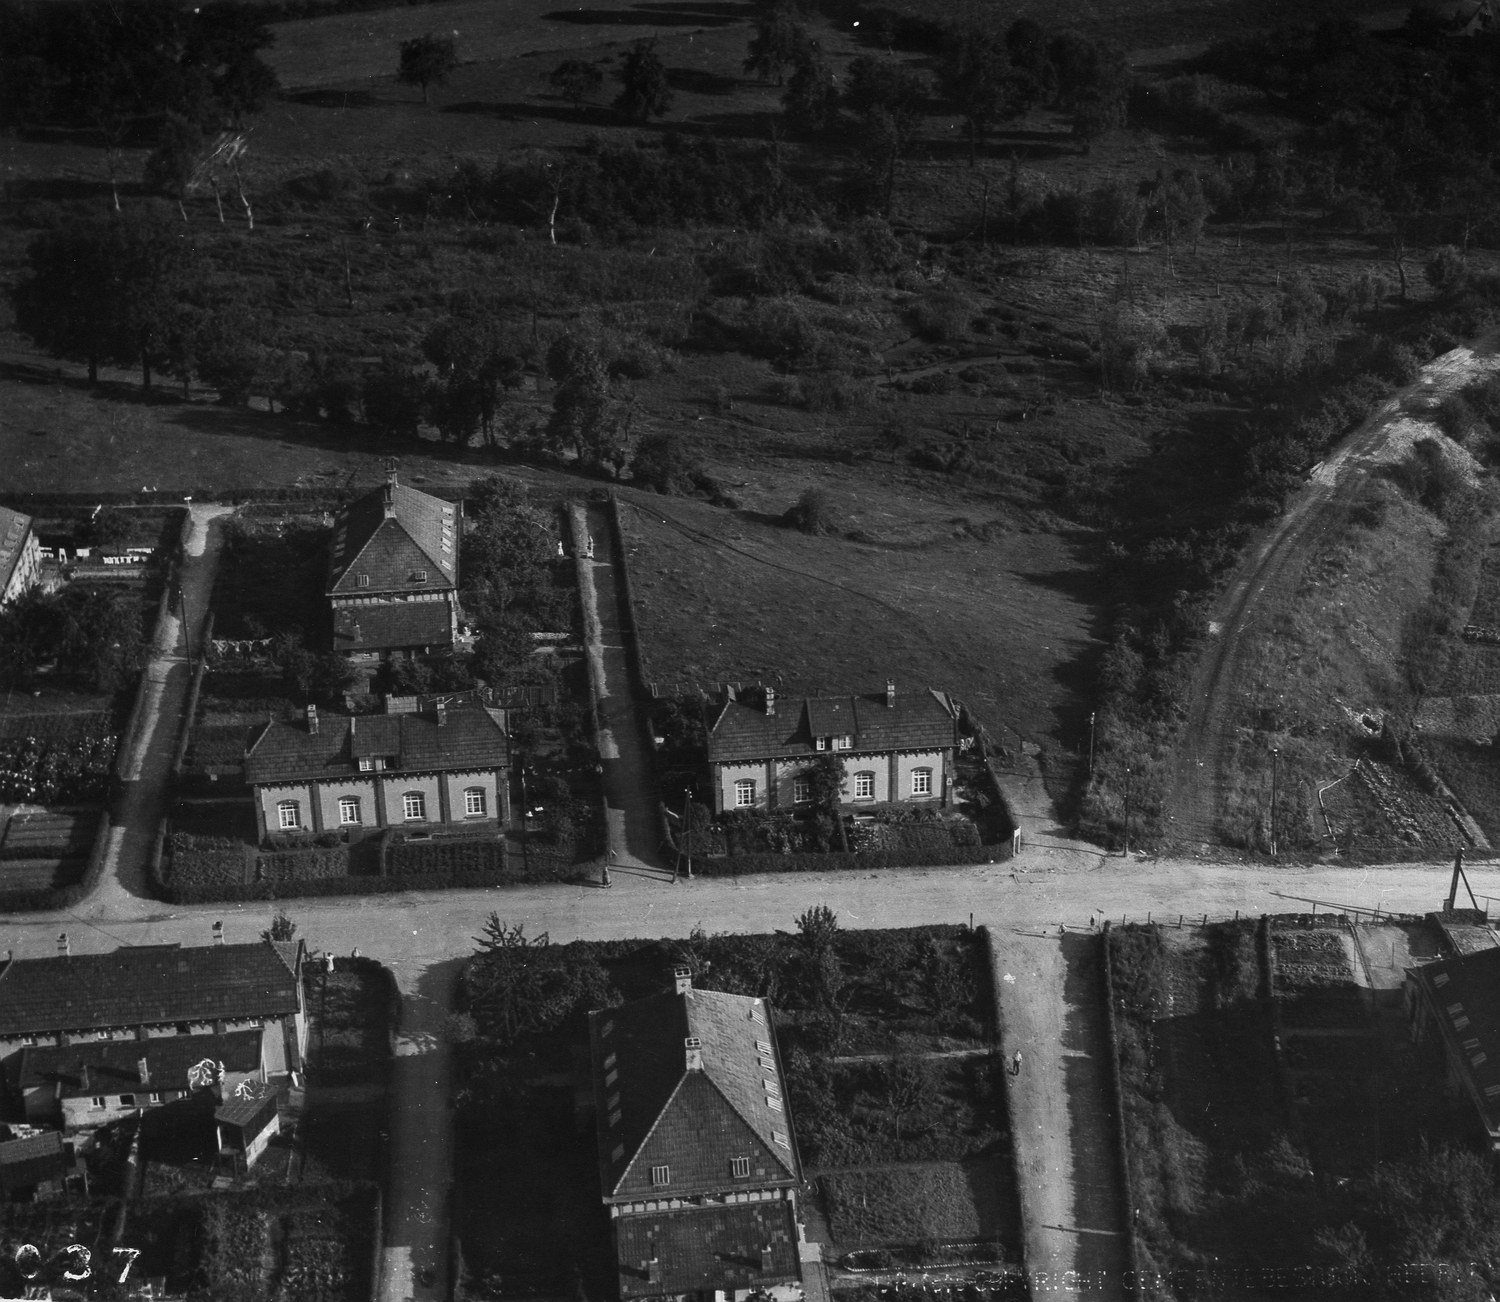 Part of the Beersdal neighbourhood in Heerlen, 1952 (photo: Bos; Rijckheyt, Centre for regional history, Heerlen, no. 4848)